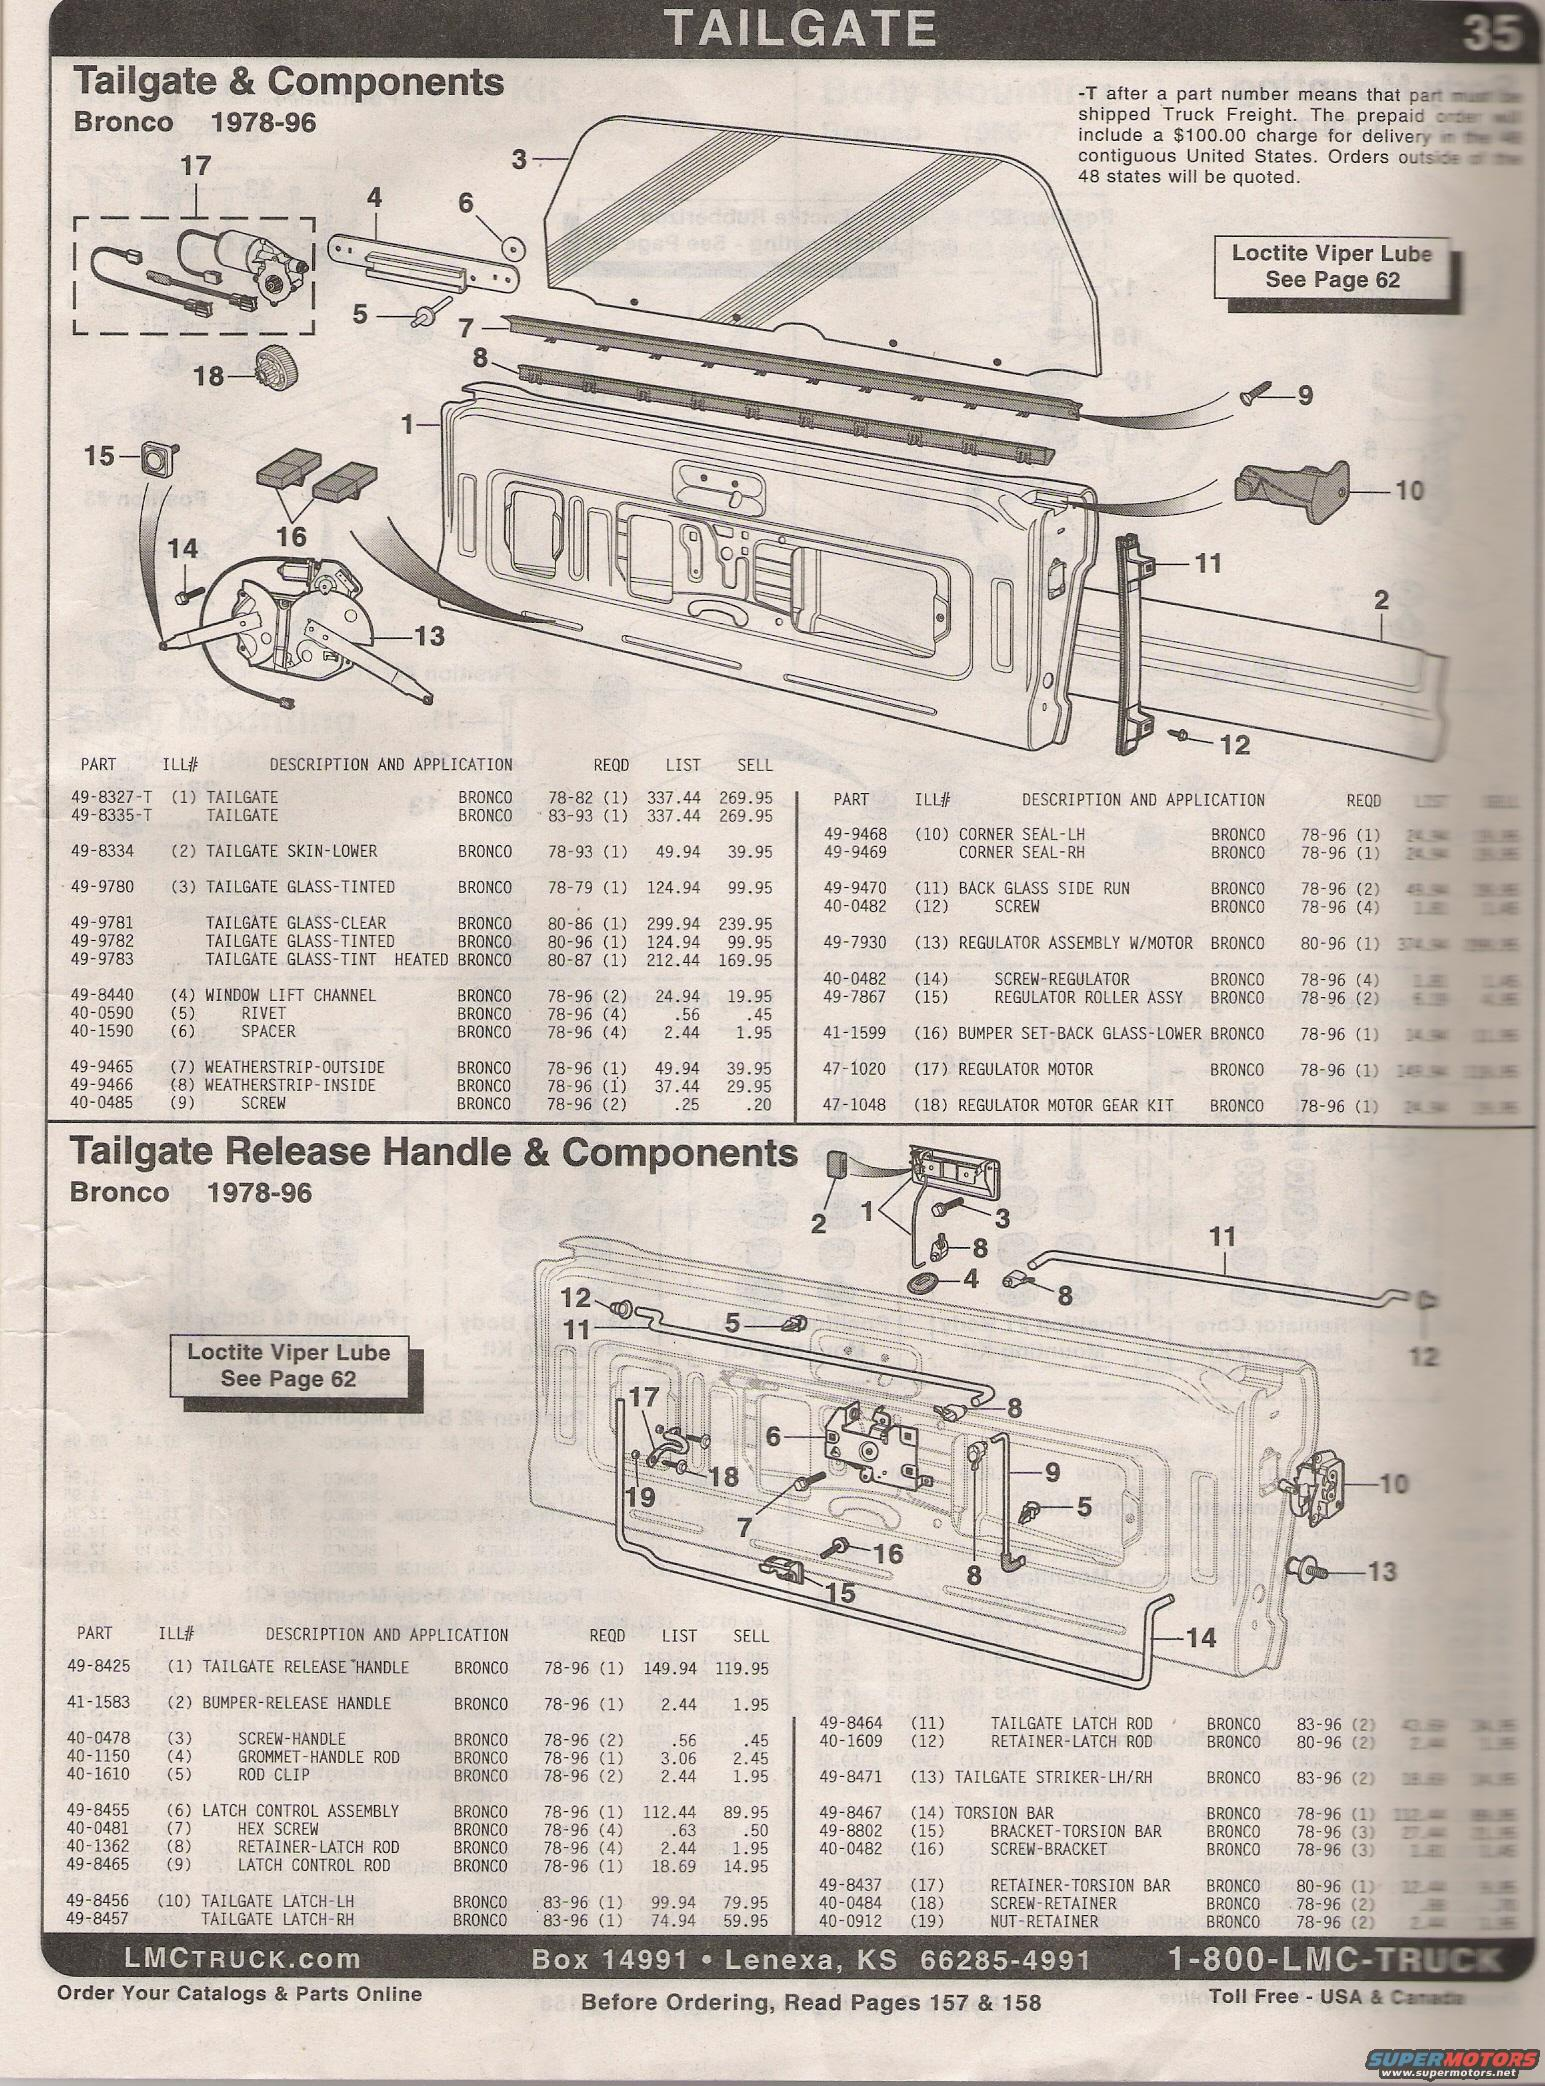 1979 Ford Bronco Tailgate Diagram House Wiring Symbols 1980 Part Numbers Lmc Picture Rh Supermotors Net 1978